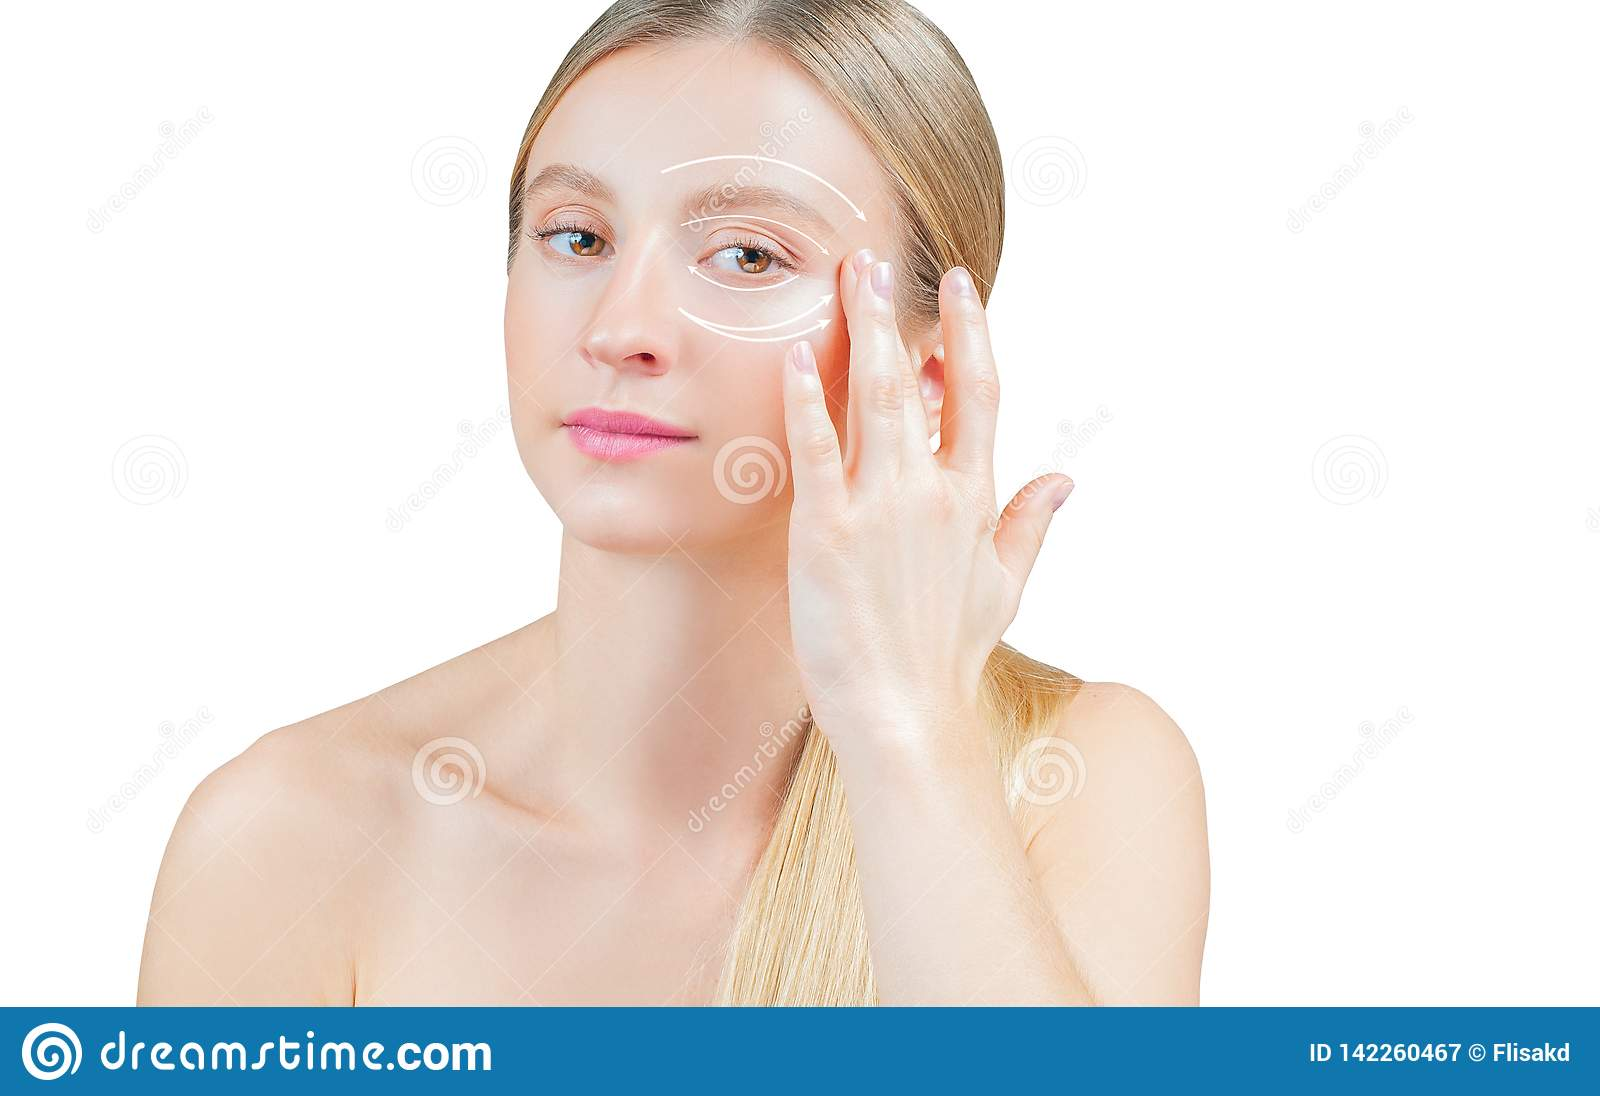 Anti-aging treatment and face lifting, beautiful woman with perfect skin with or arrows around eyes